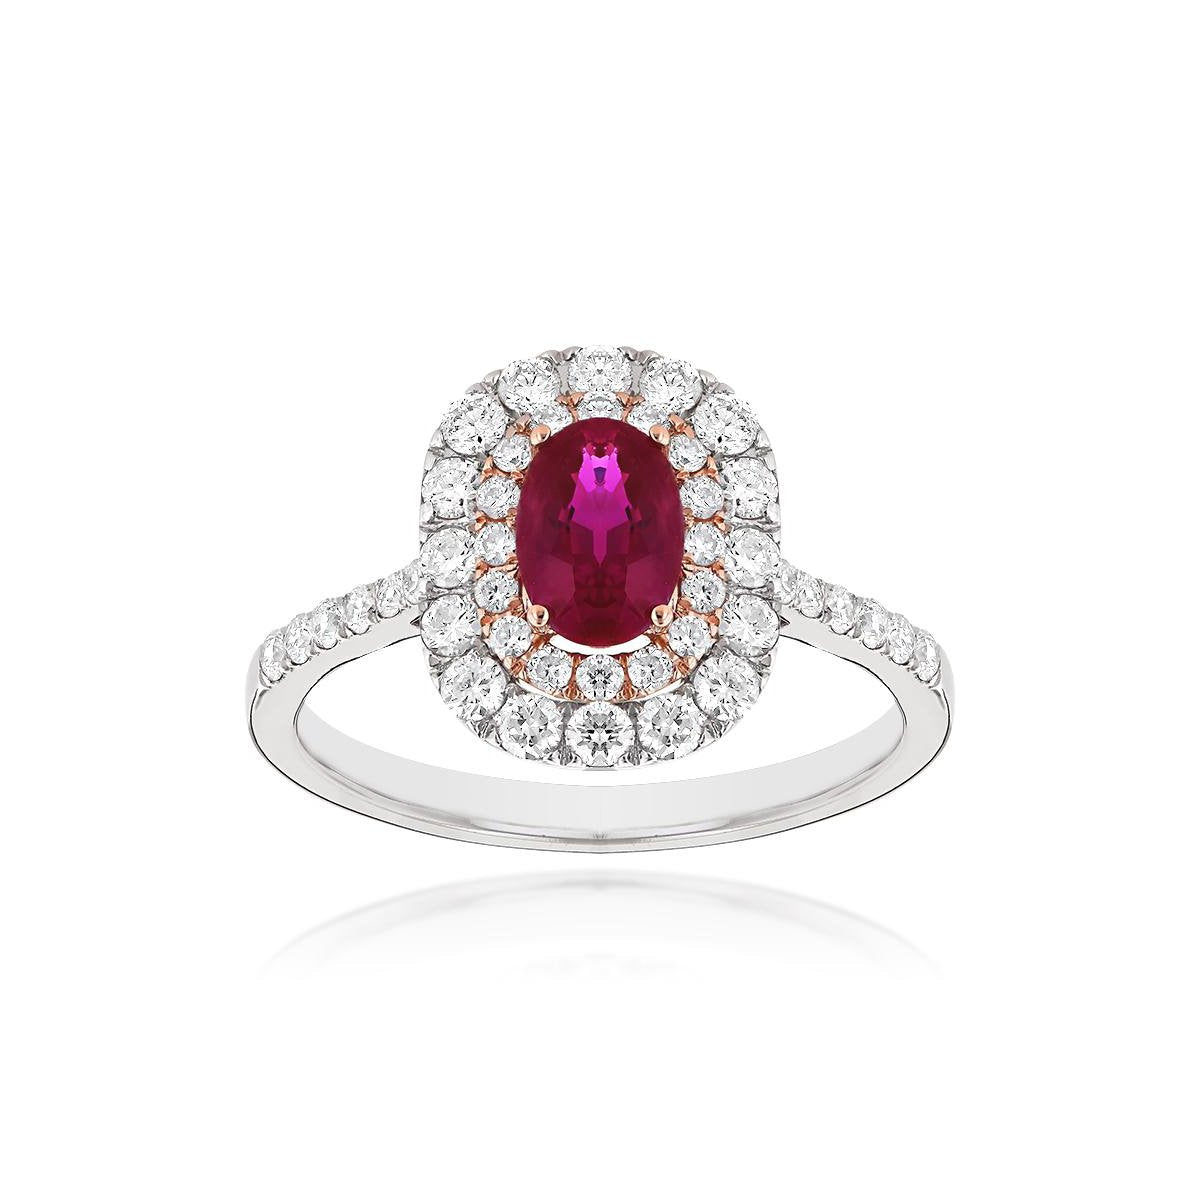 Sabel Collection 14K White Gold Oval Ruby and Double Halo Diamond Ring